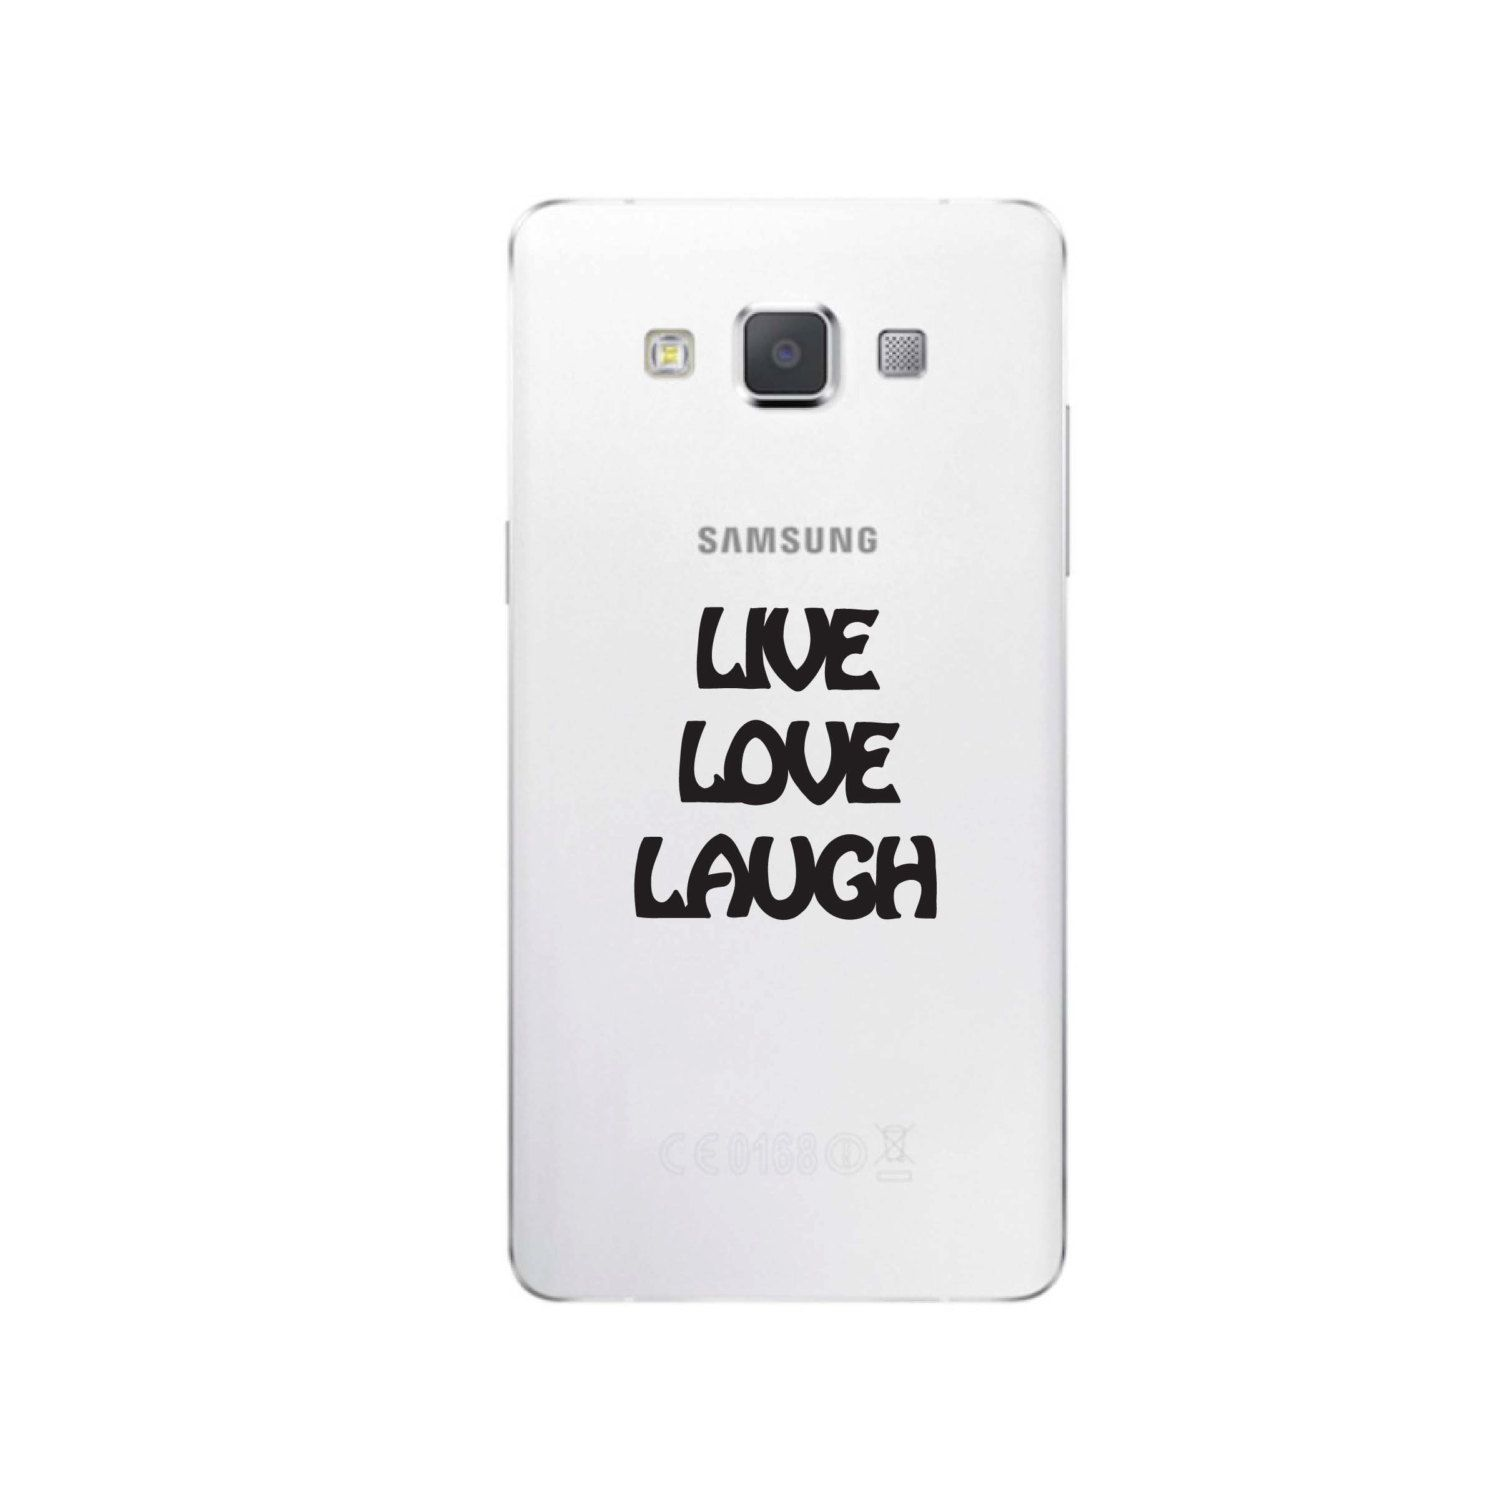 Live love laugh cell phone sticker c225 by alohamauicreations on etsy